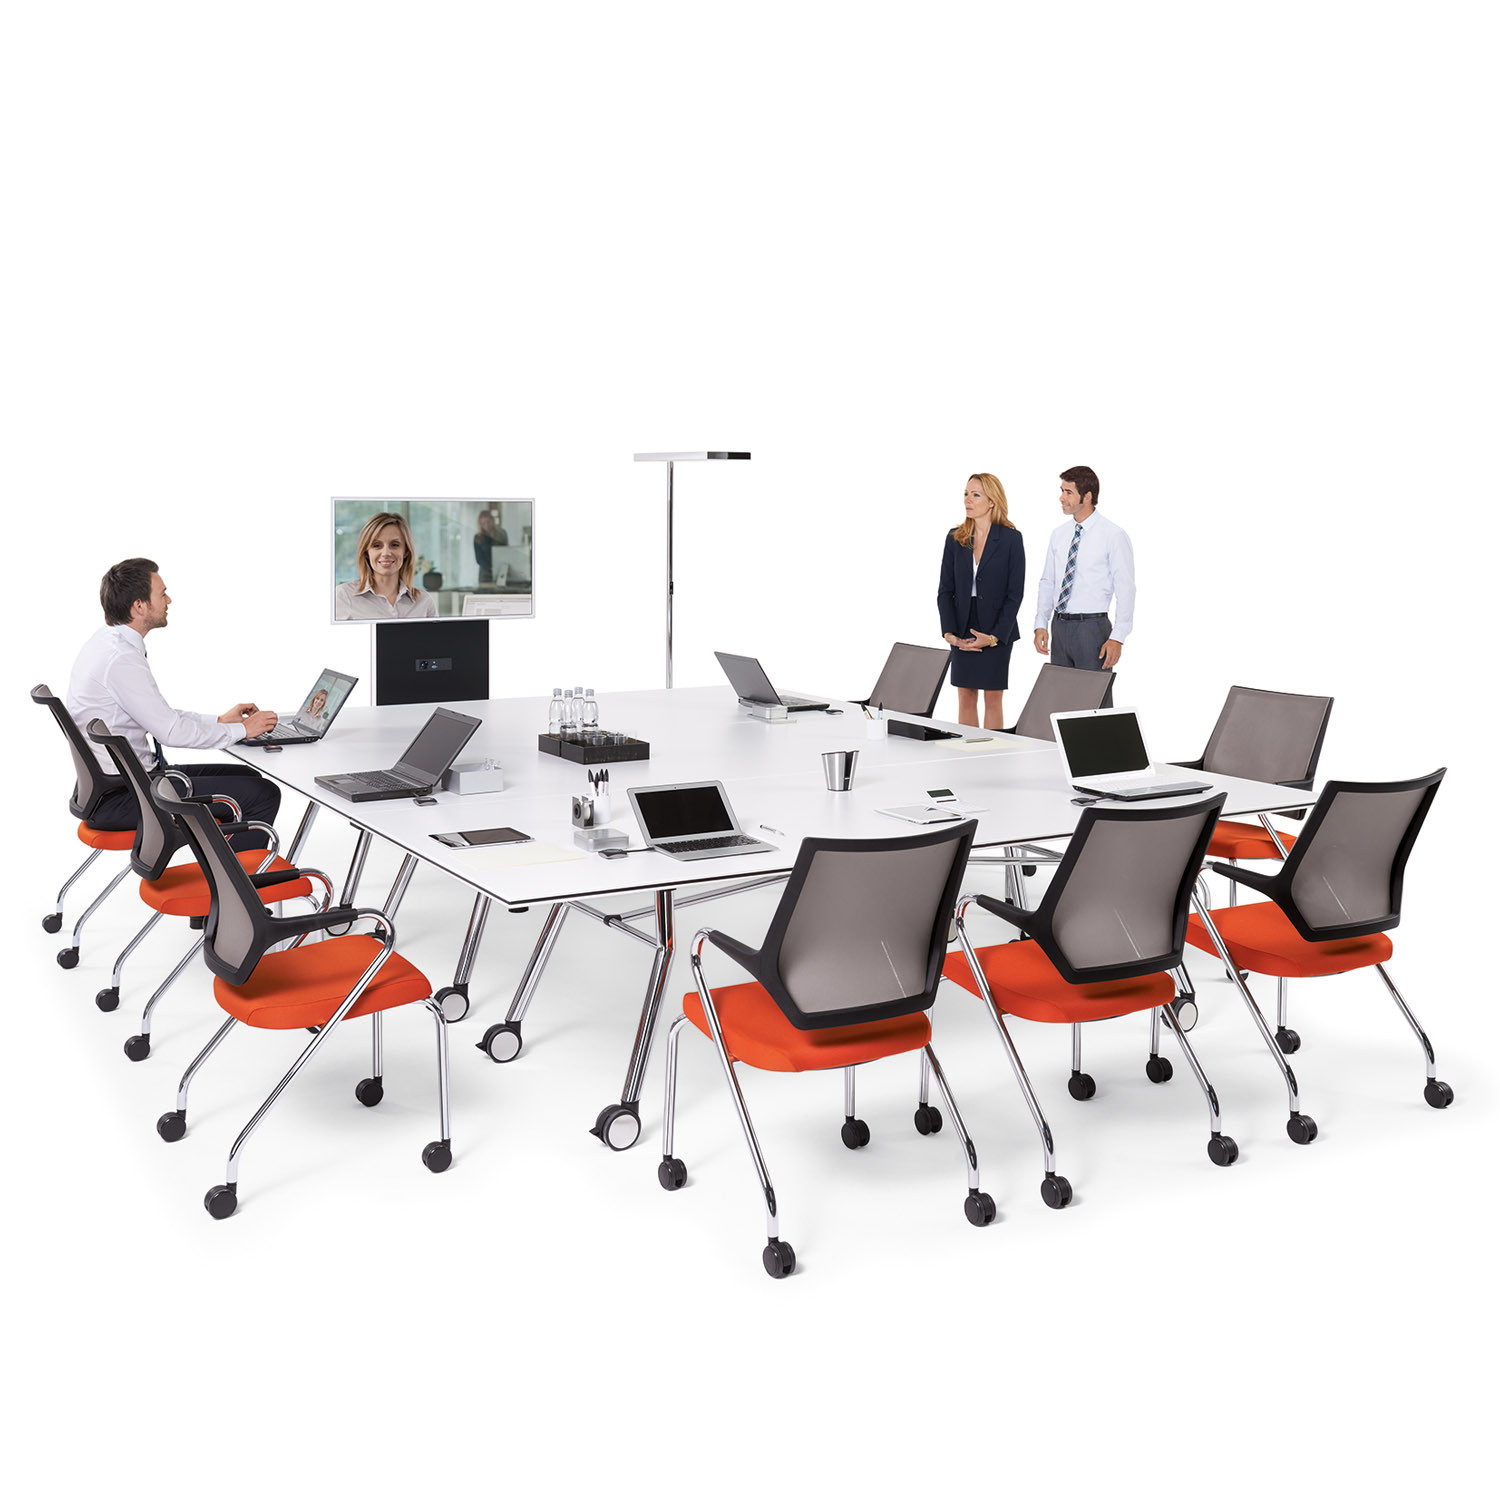 Quarterback Office Meeting Chairs